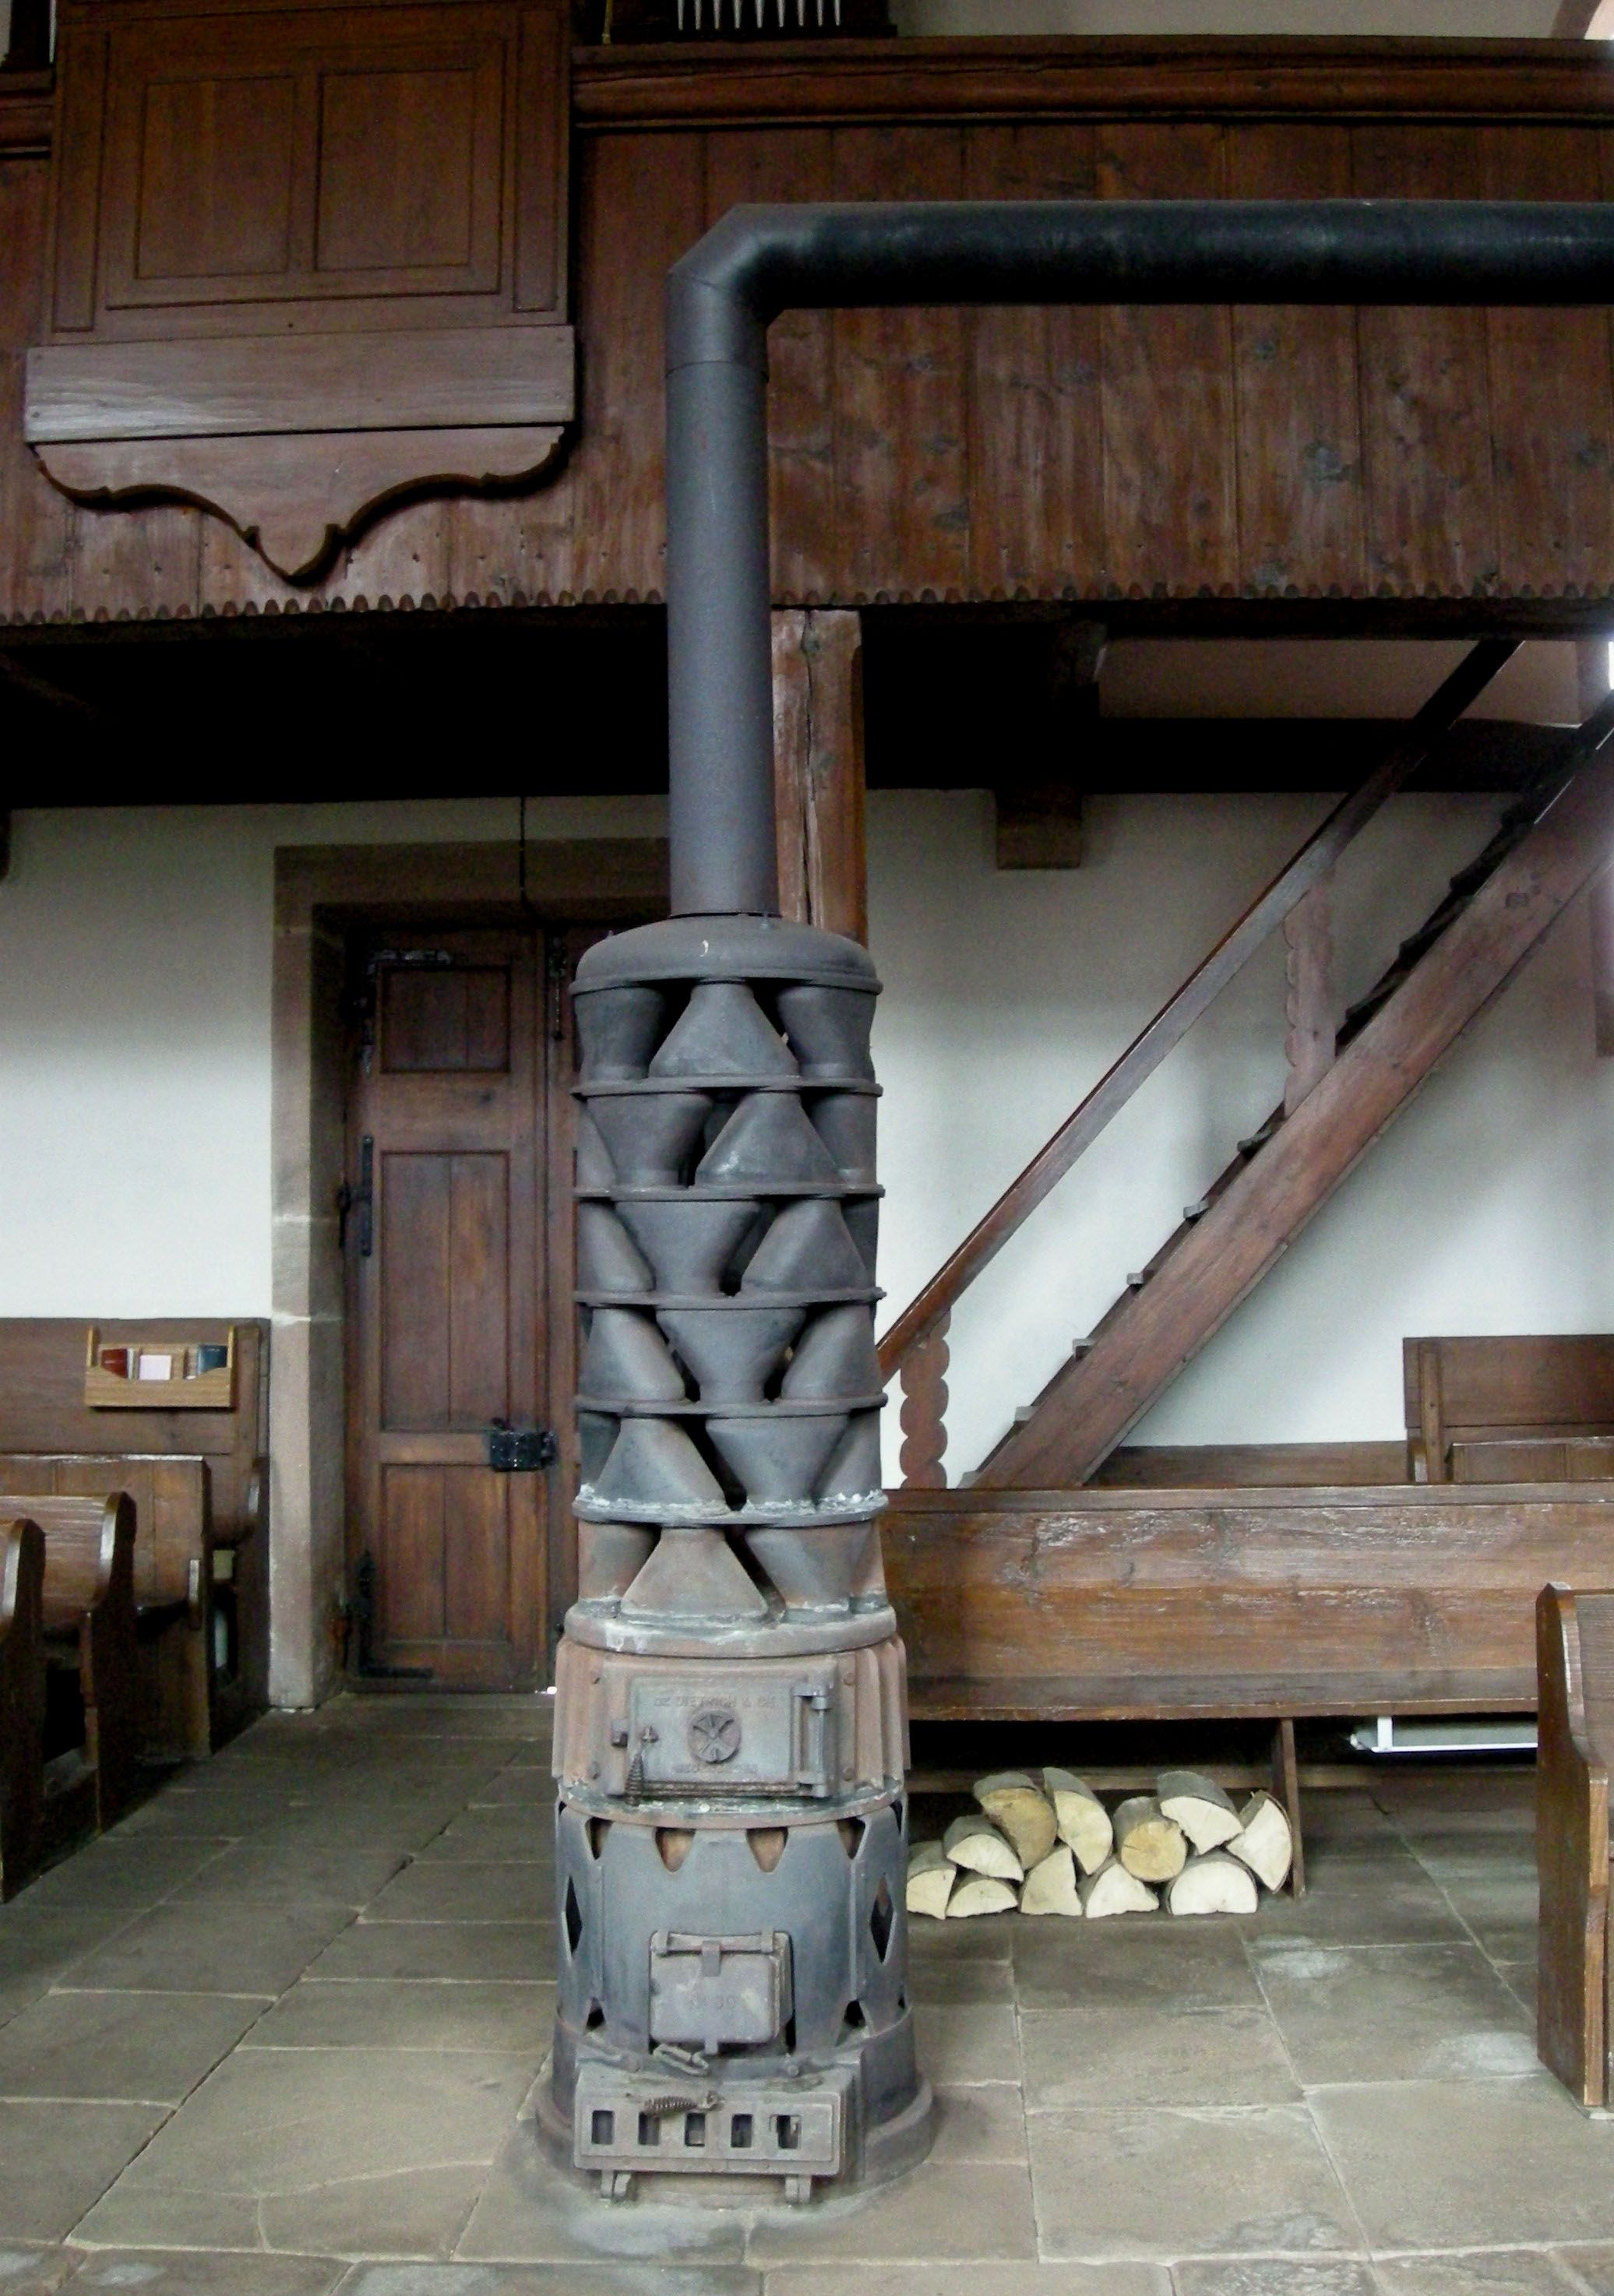 Alsatian stove with large exhaust gas heat exchanger in Fouday church & poele a bois scandinave fonctionne ouvert - Google Search | All ...